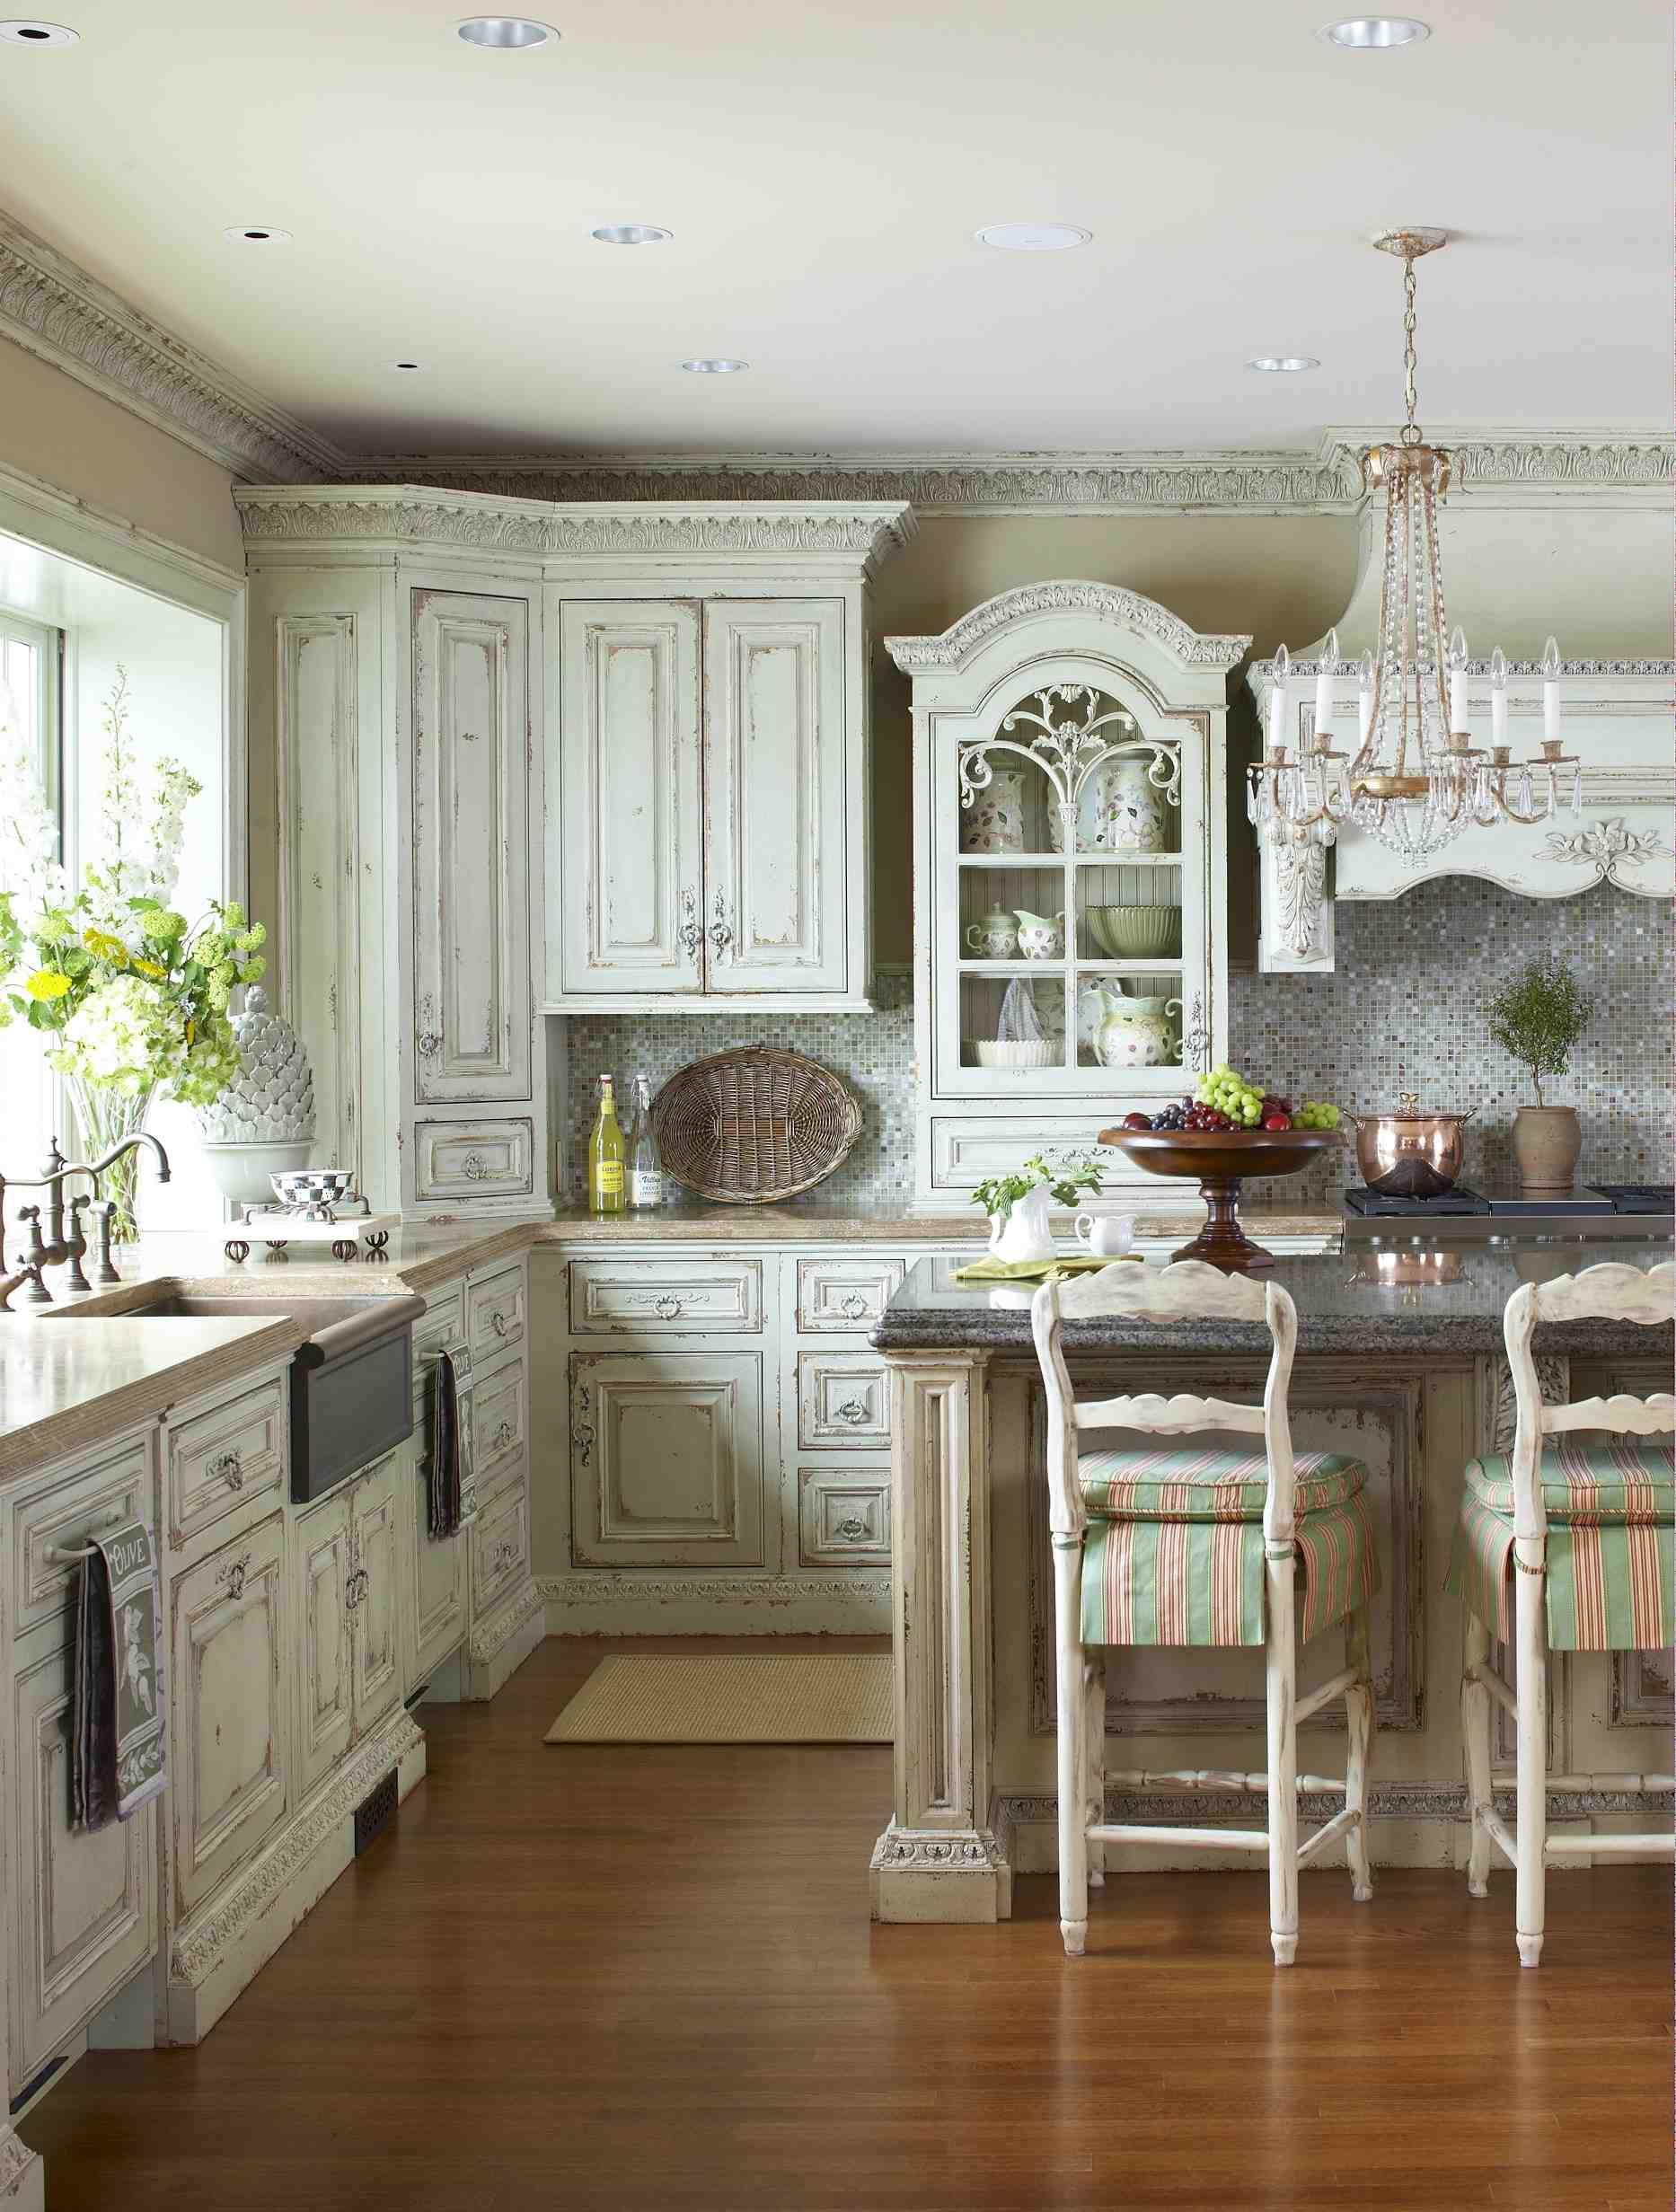 beautiful kitchen cabinets small table set my favorite kitchens of 2010 stacystyle 39s blog